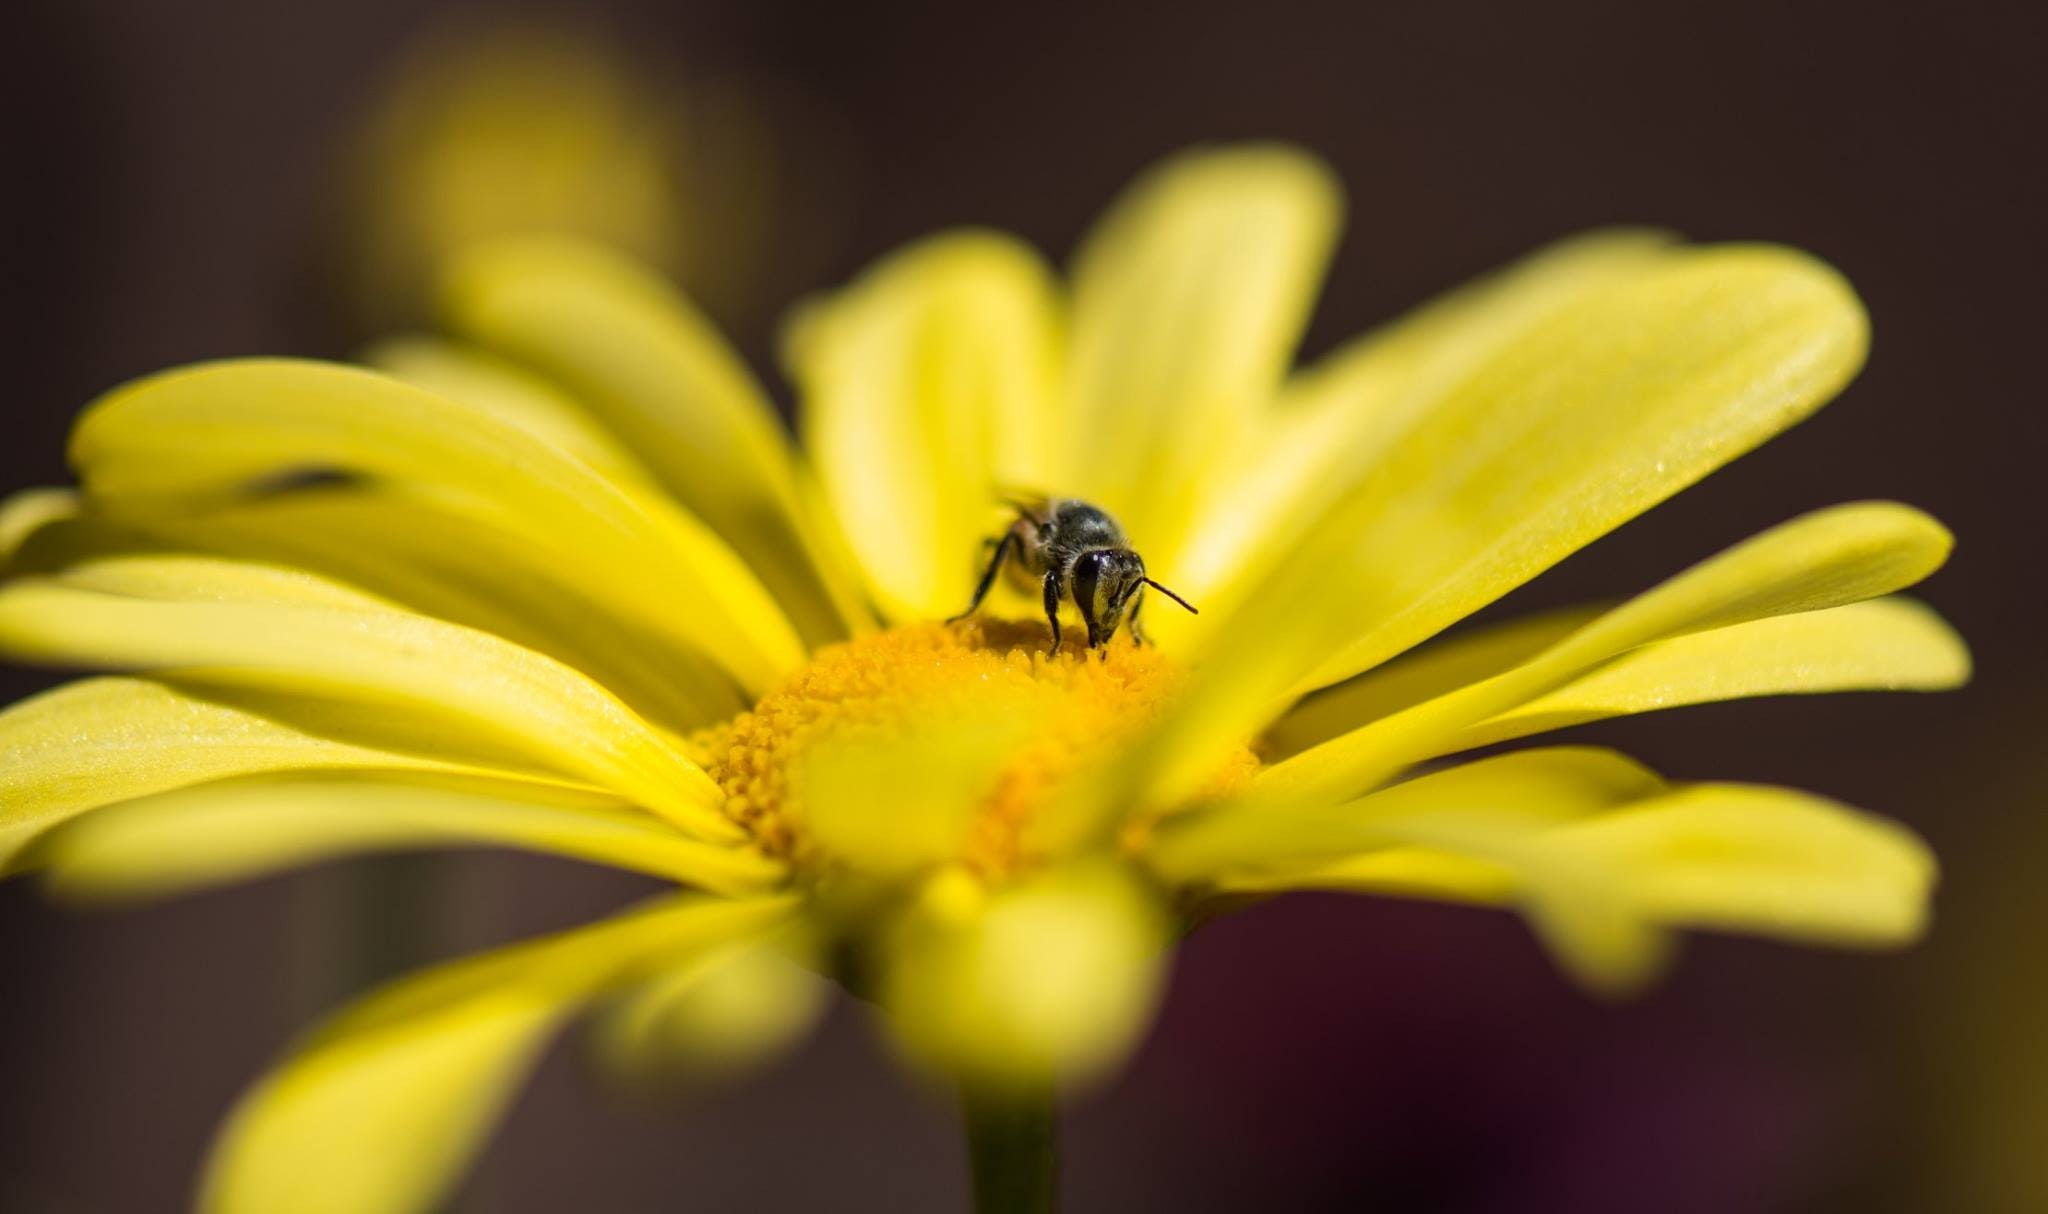 Honeybee Perched on Yellow Petaled Flower in Closeup Photo, Macro, Little, Landscape, Insect, HQ Photo